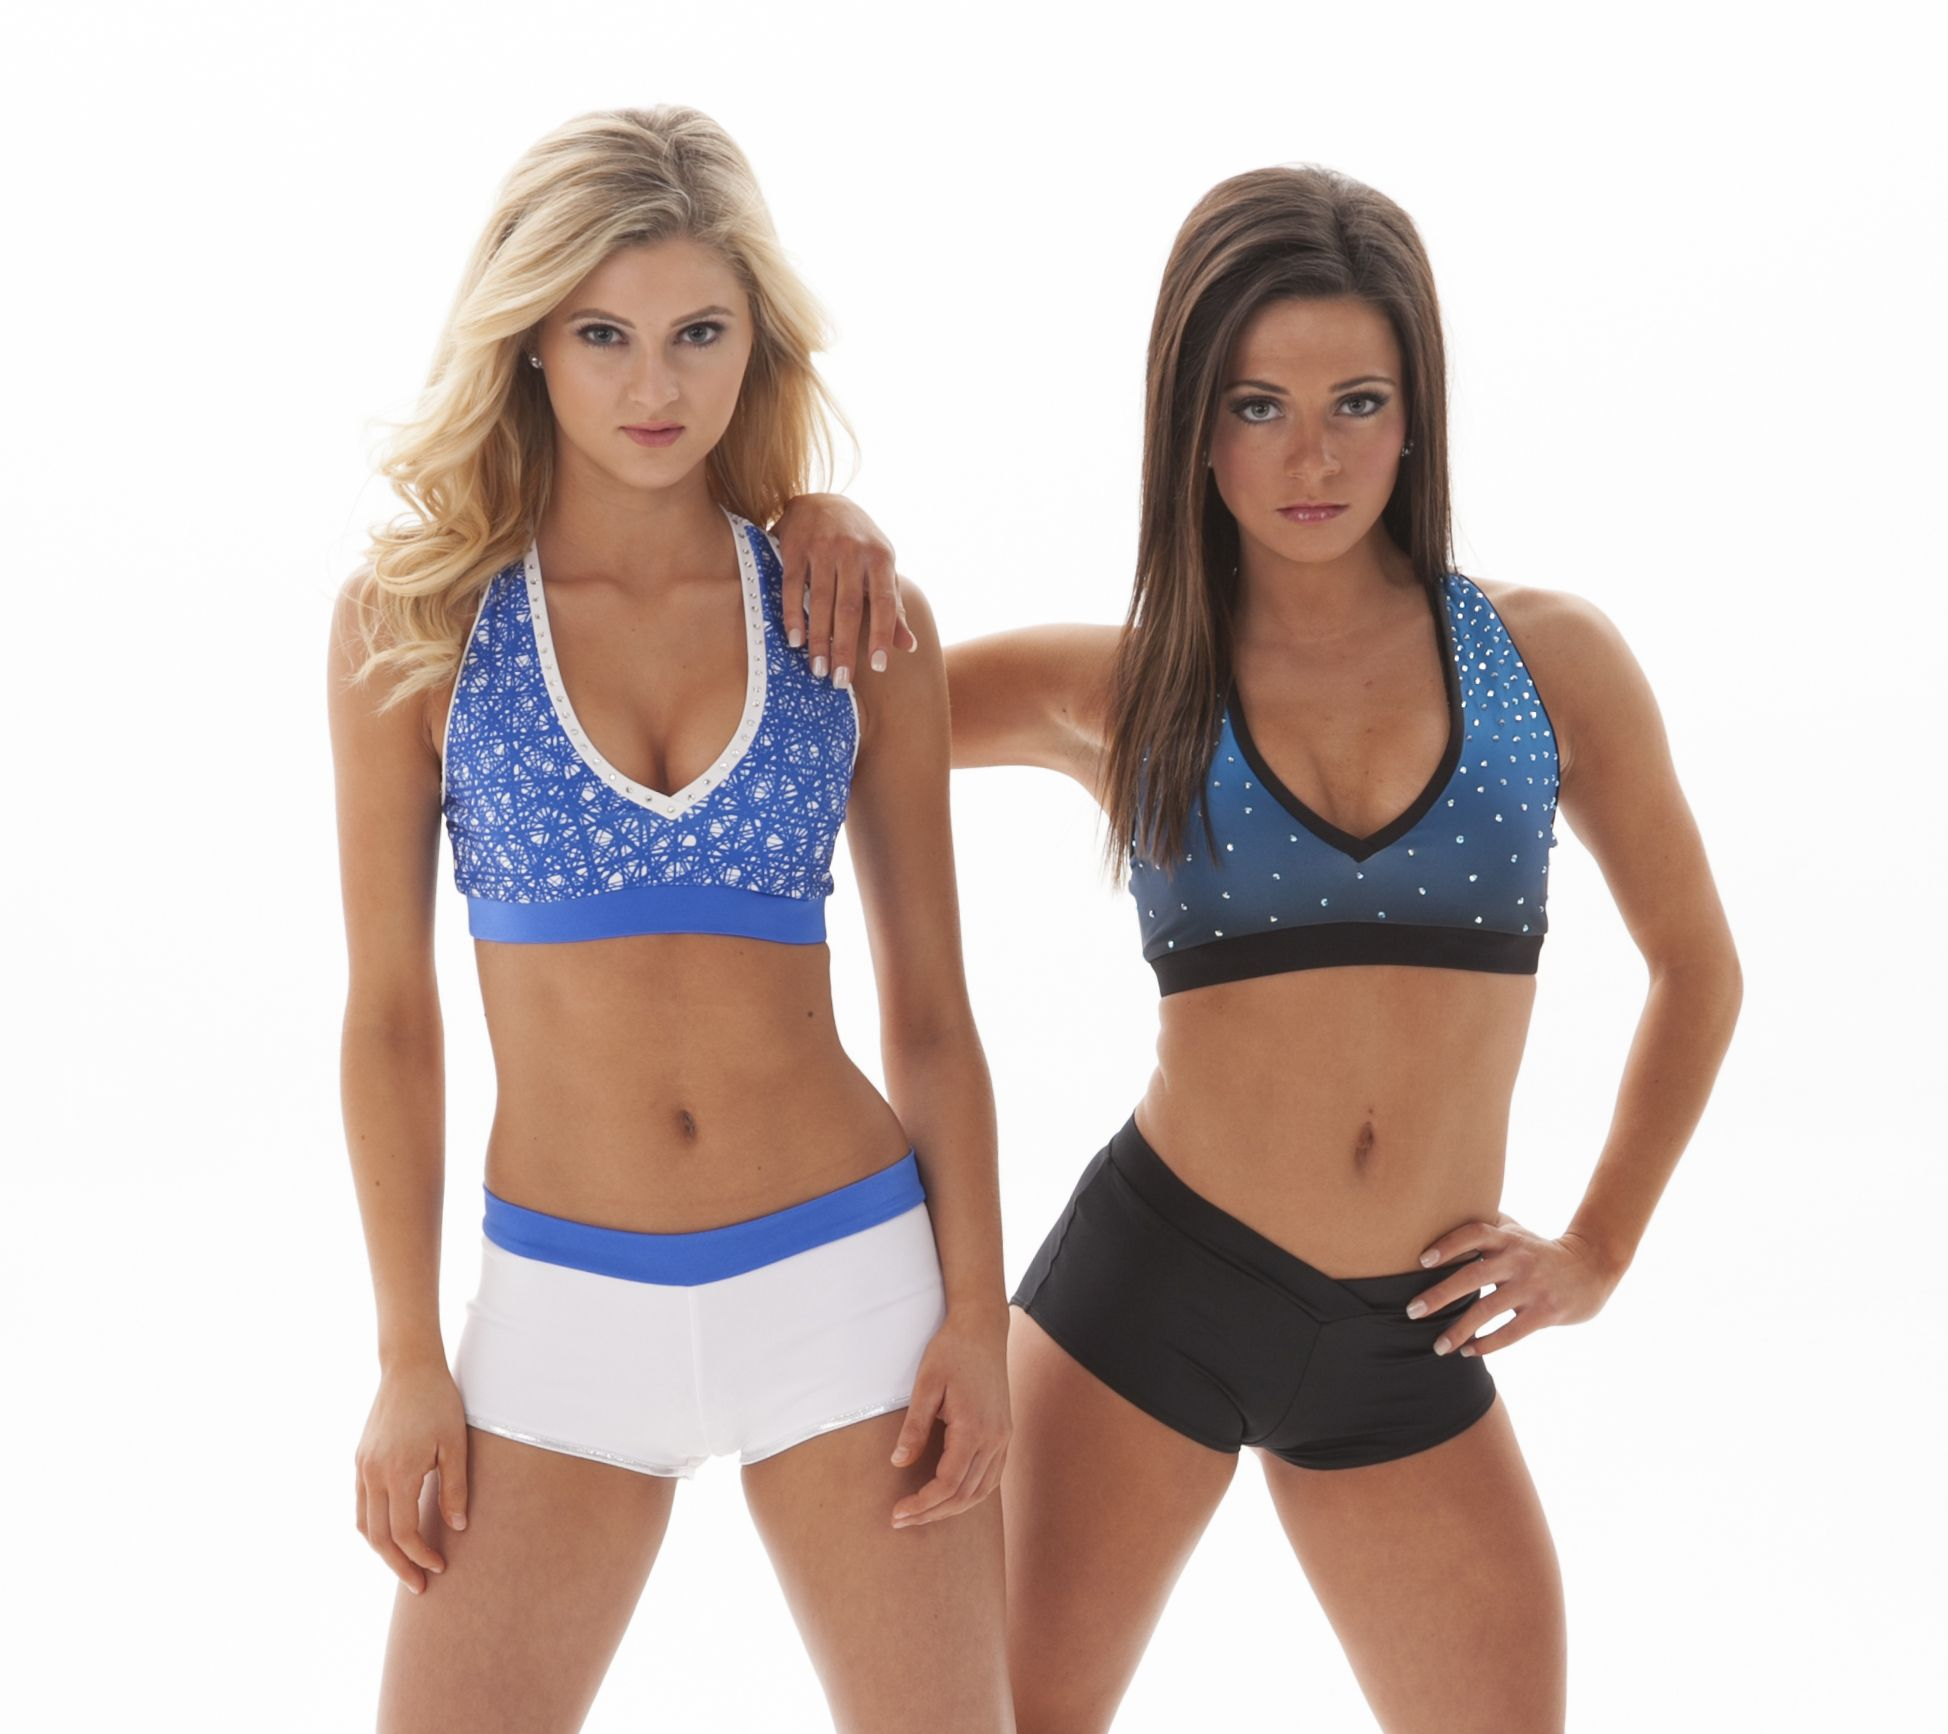 ba96a05a0f74a Tryout wear for NBA and NFL professional cheerleaders and dance teams. Tops